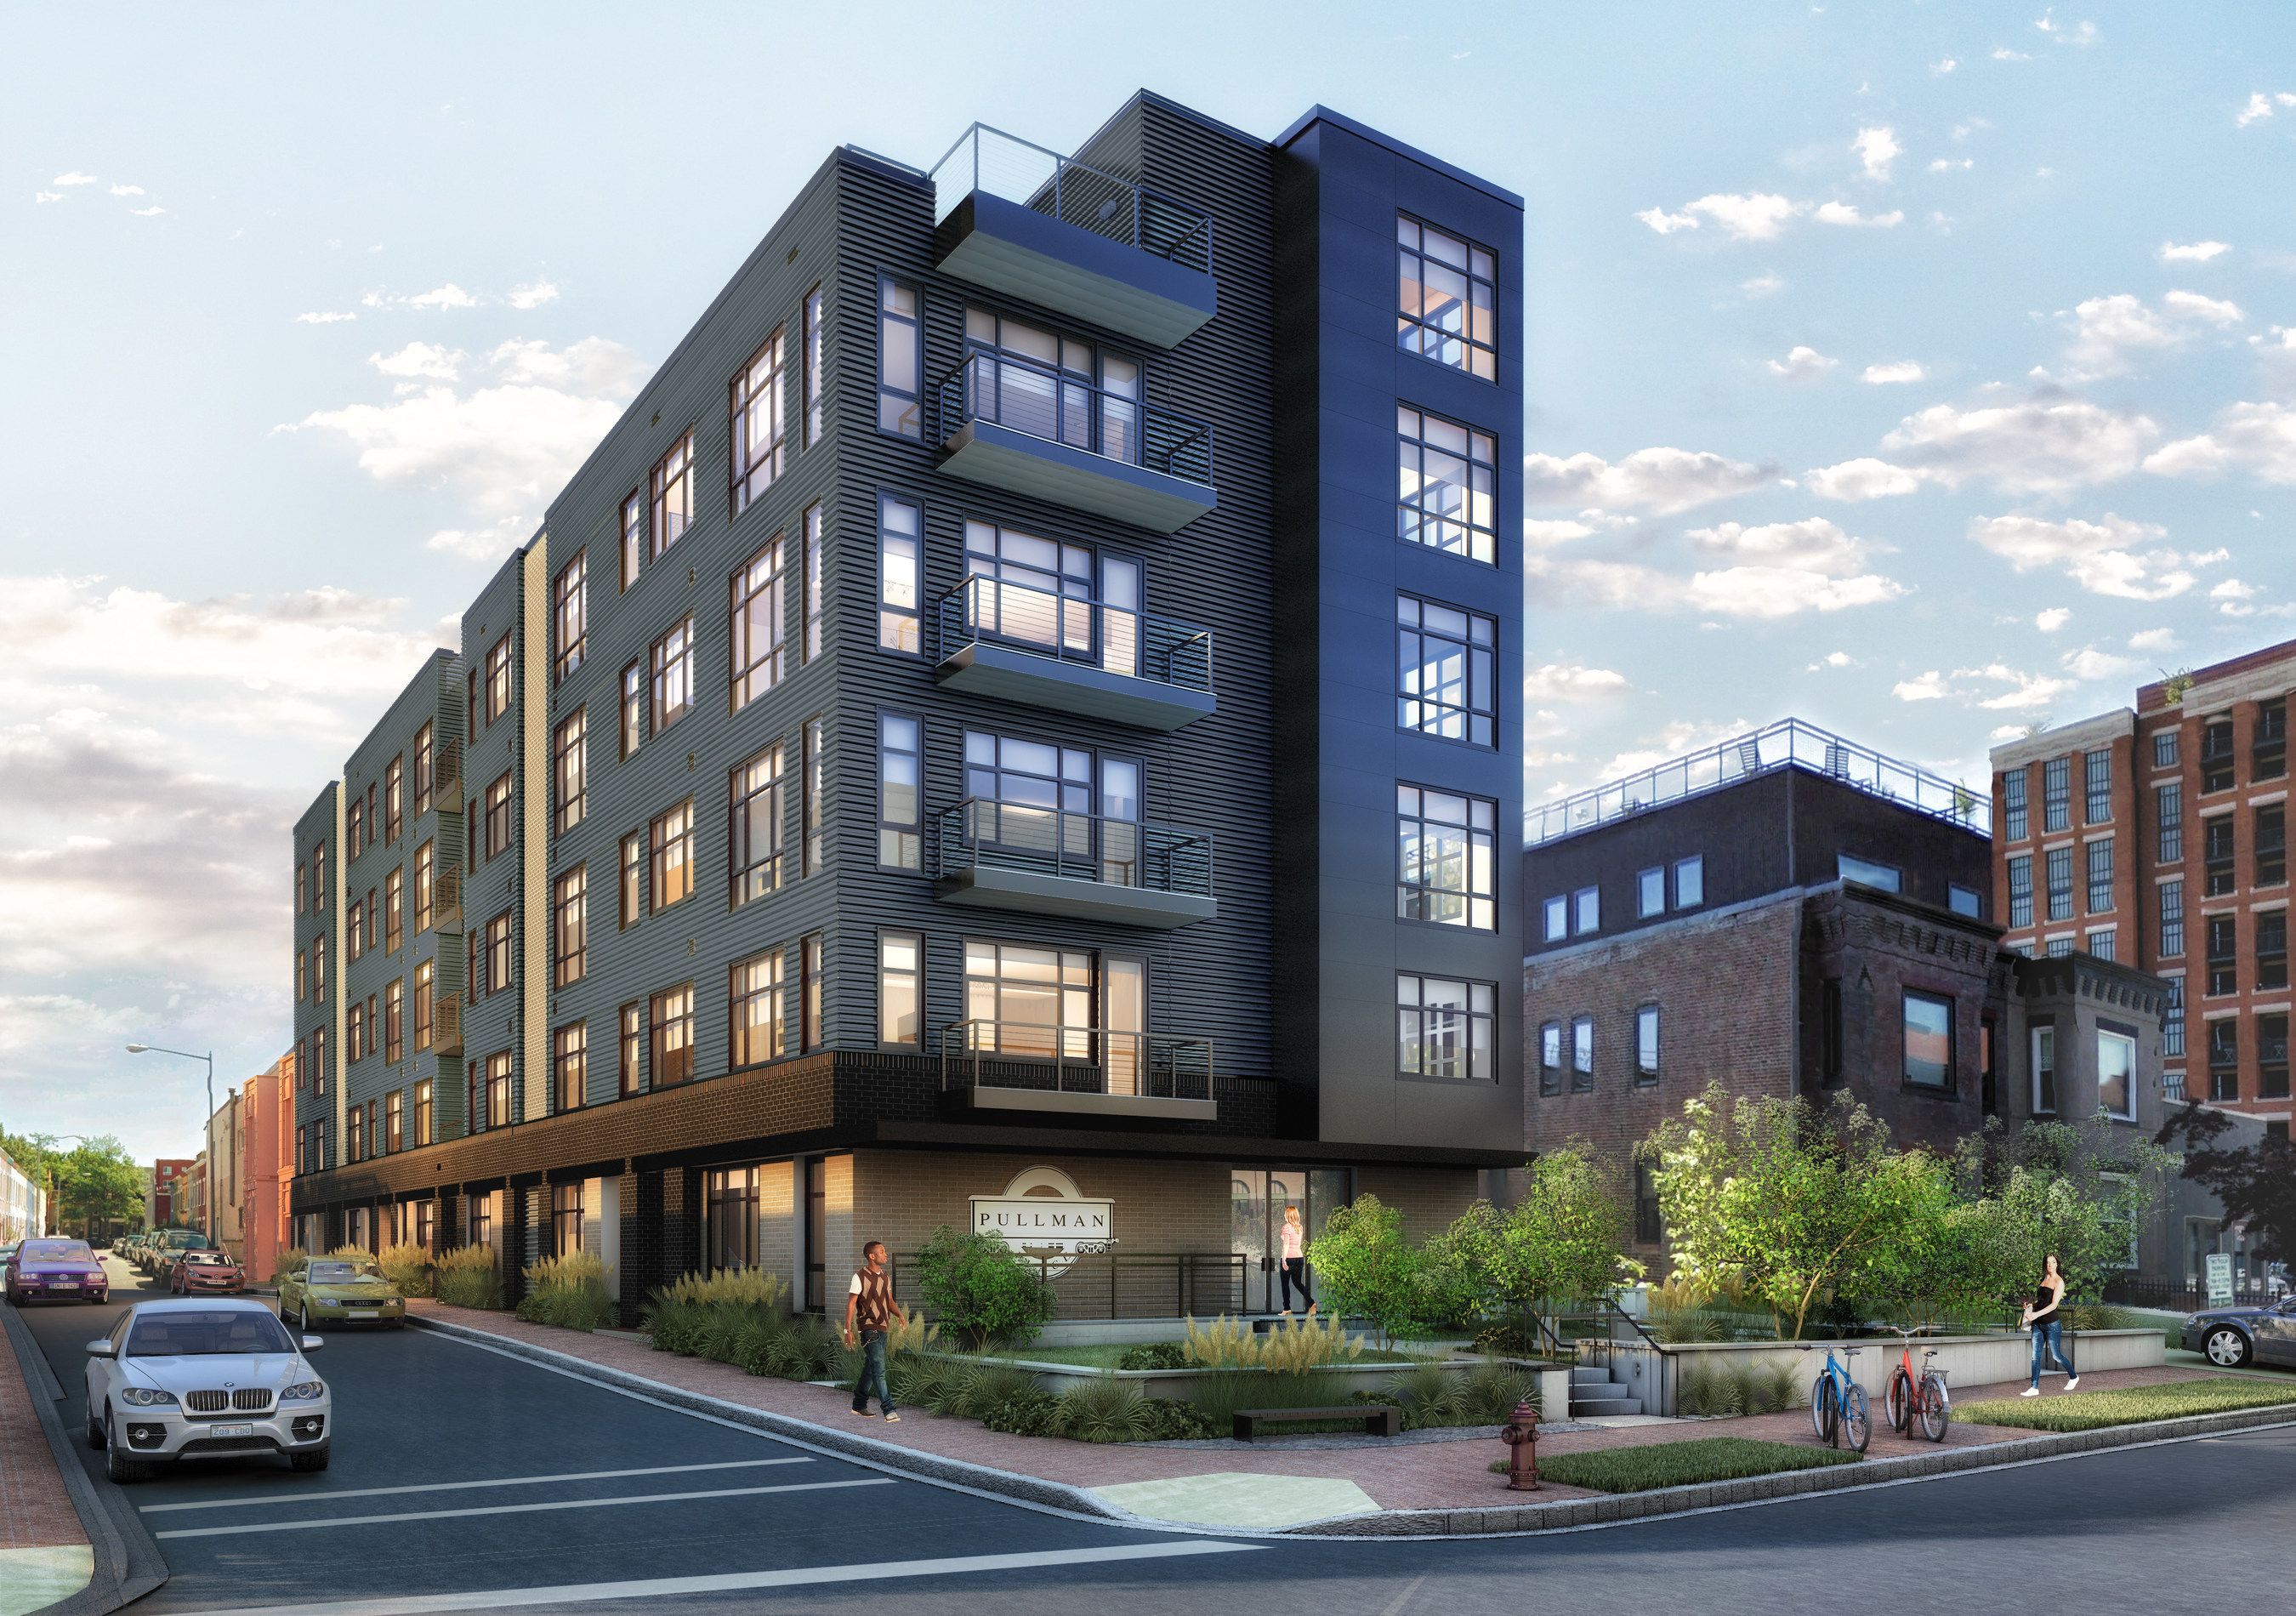 Rendering of Pullman Place located at 909 2nd Street, NE in Washington, D.C.